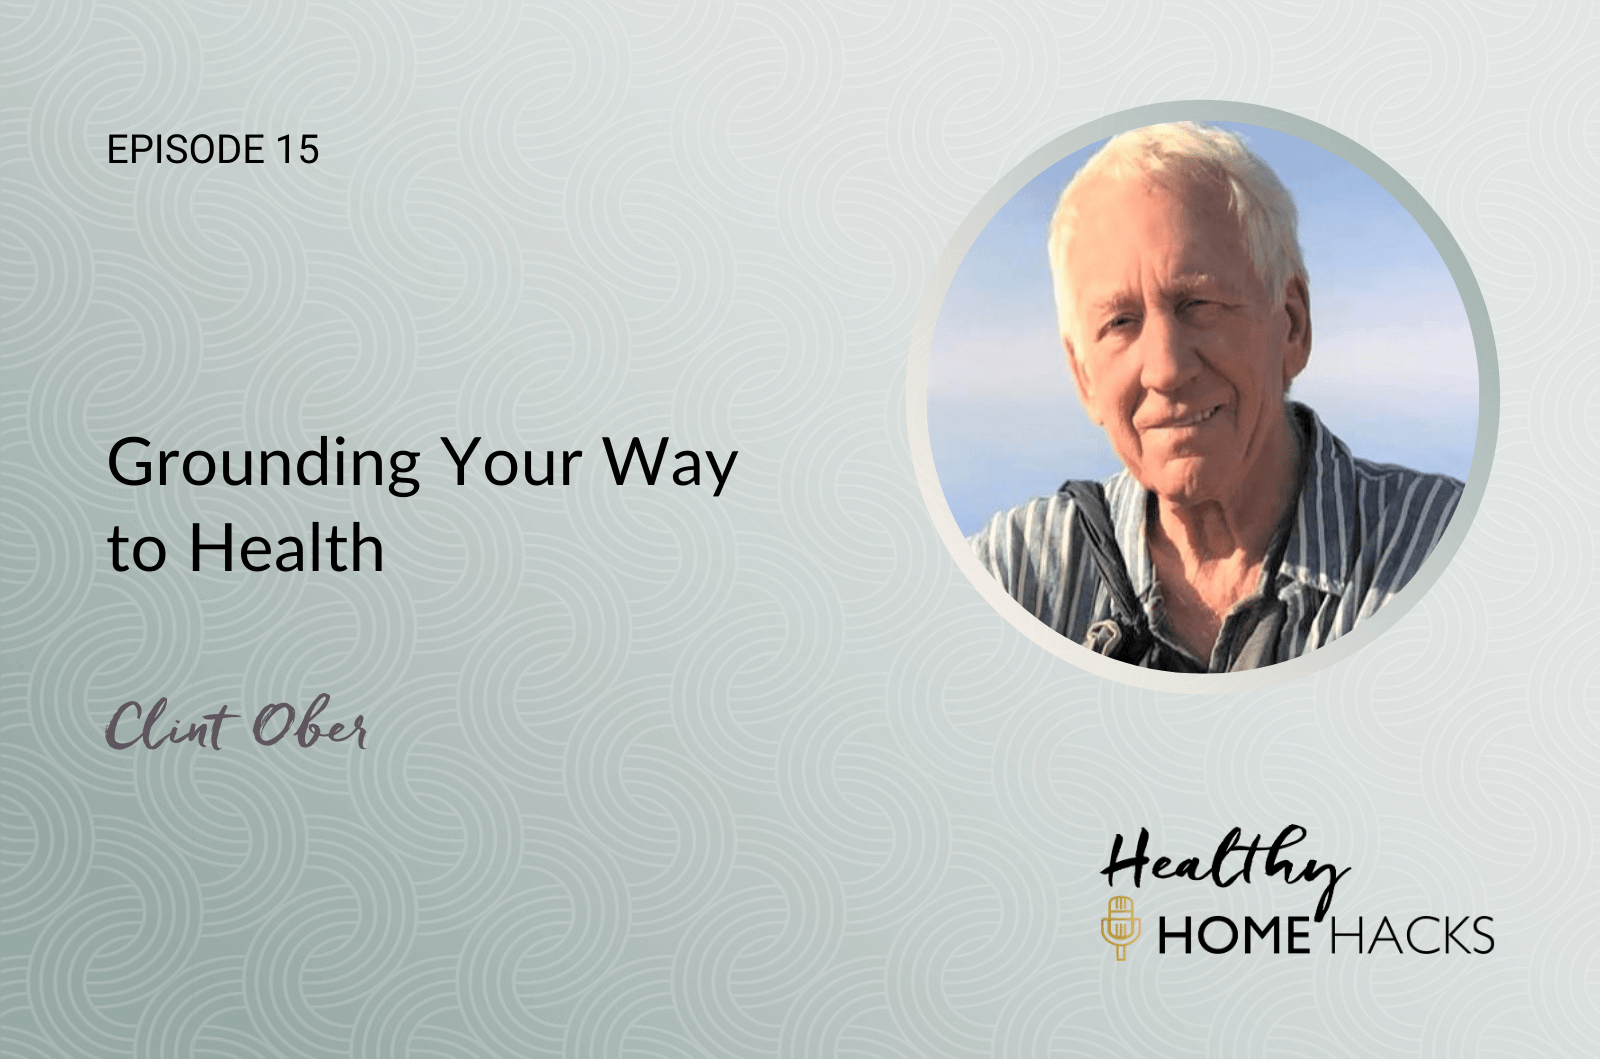 Grounding Your Way to Health